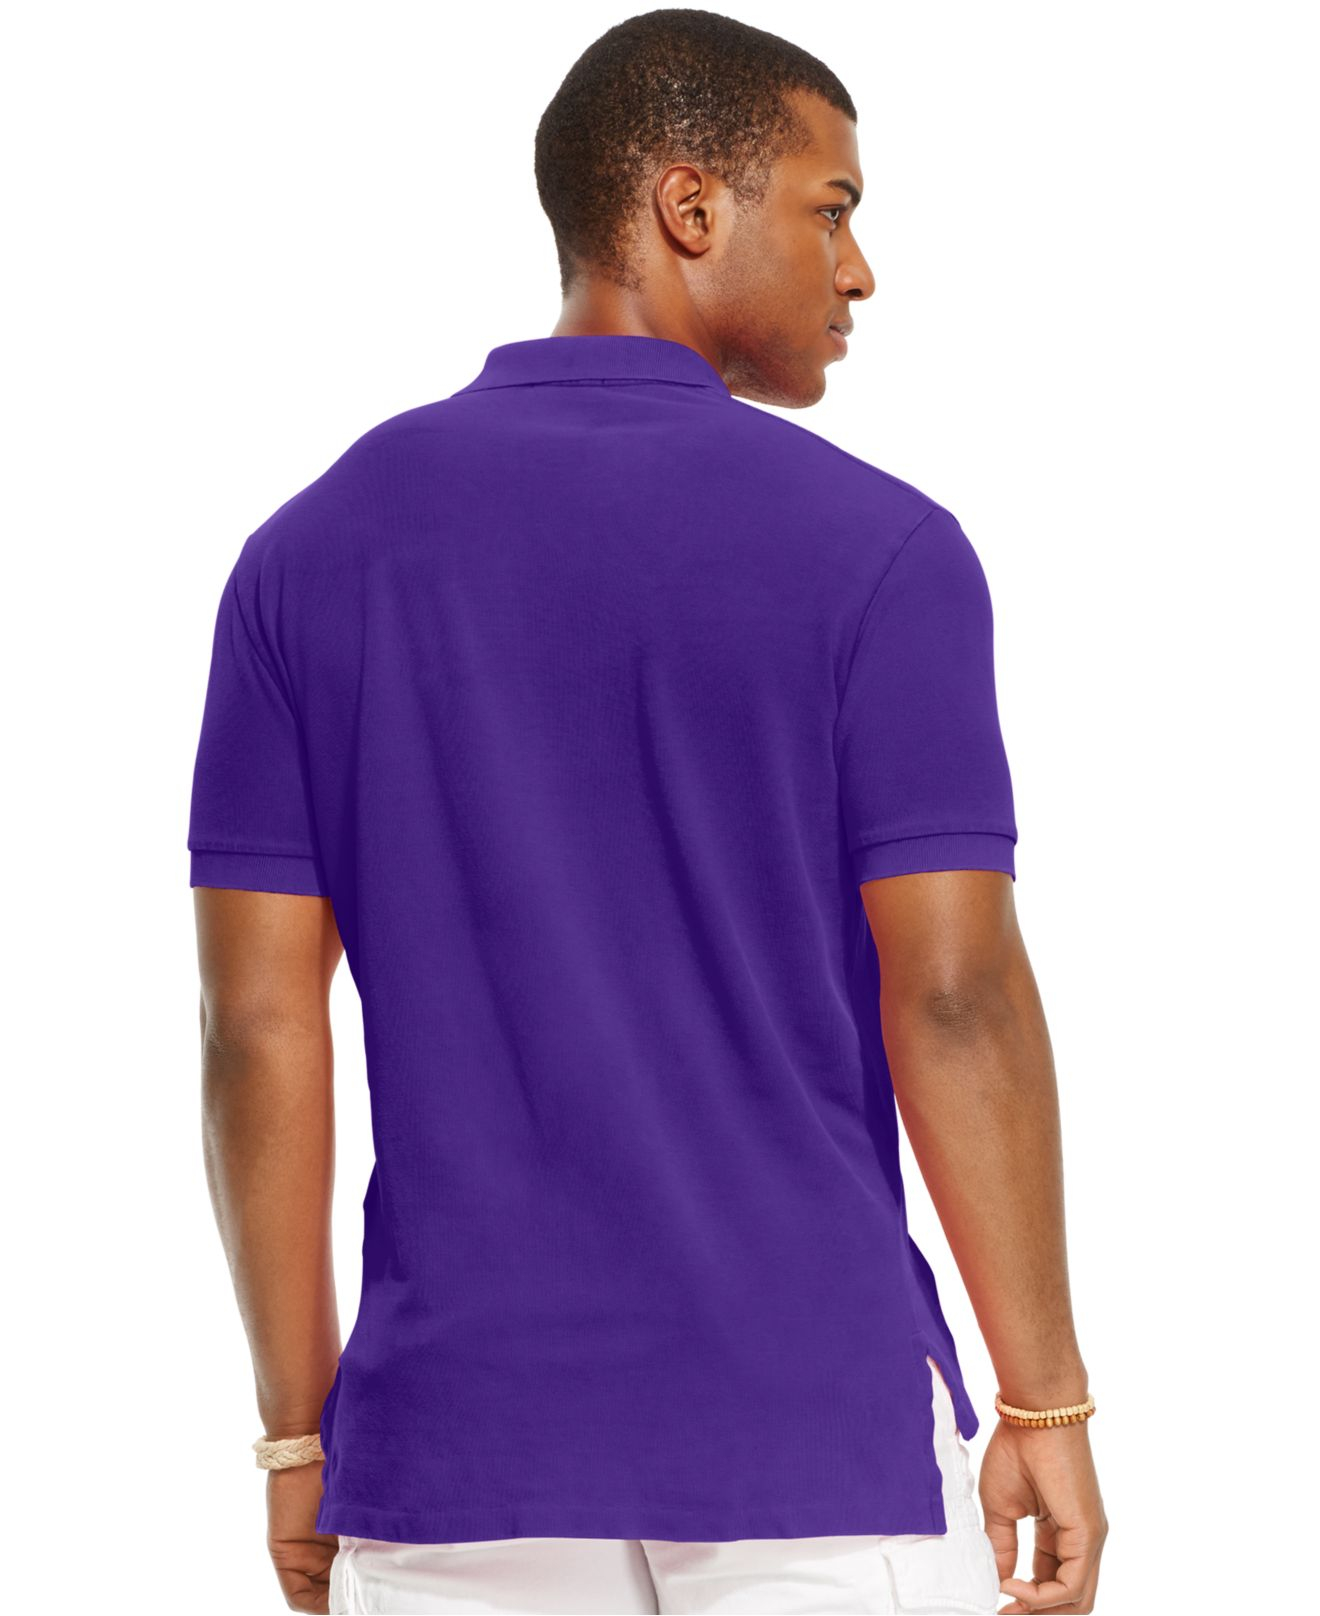 Lyst - Polo Ralph Lauren Classic-fit Mesh Polo in Purple for Men 8ca9904577c